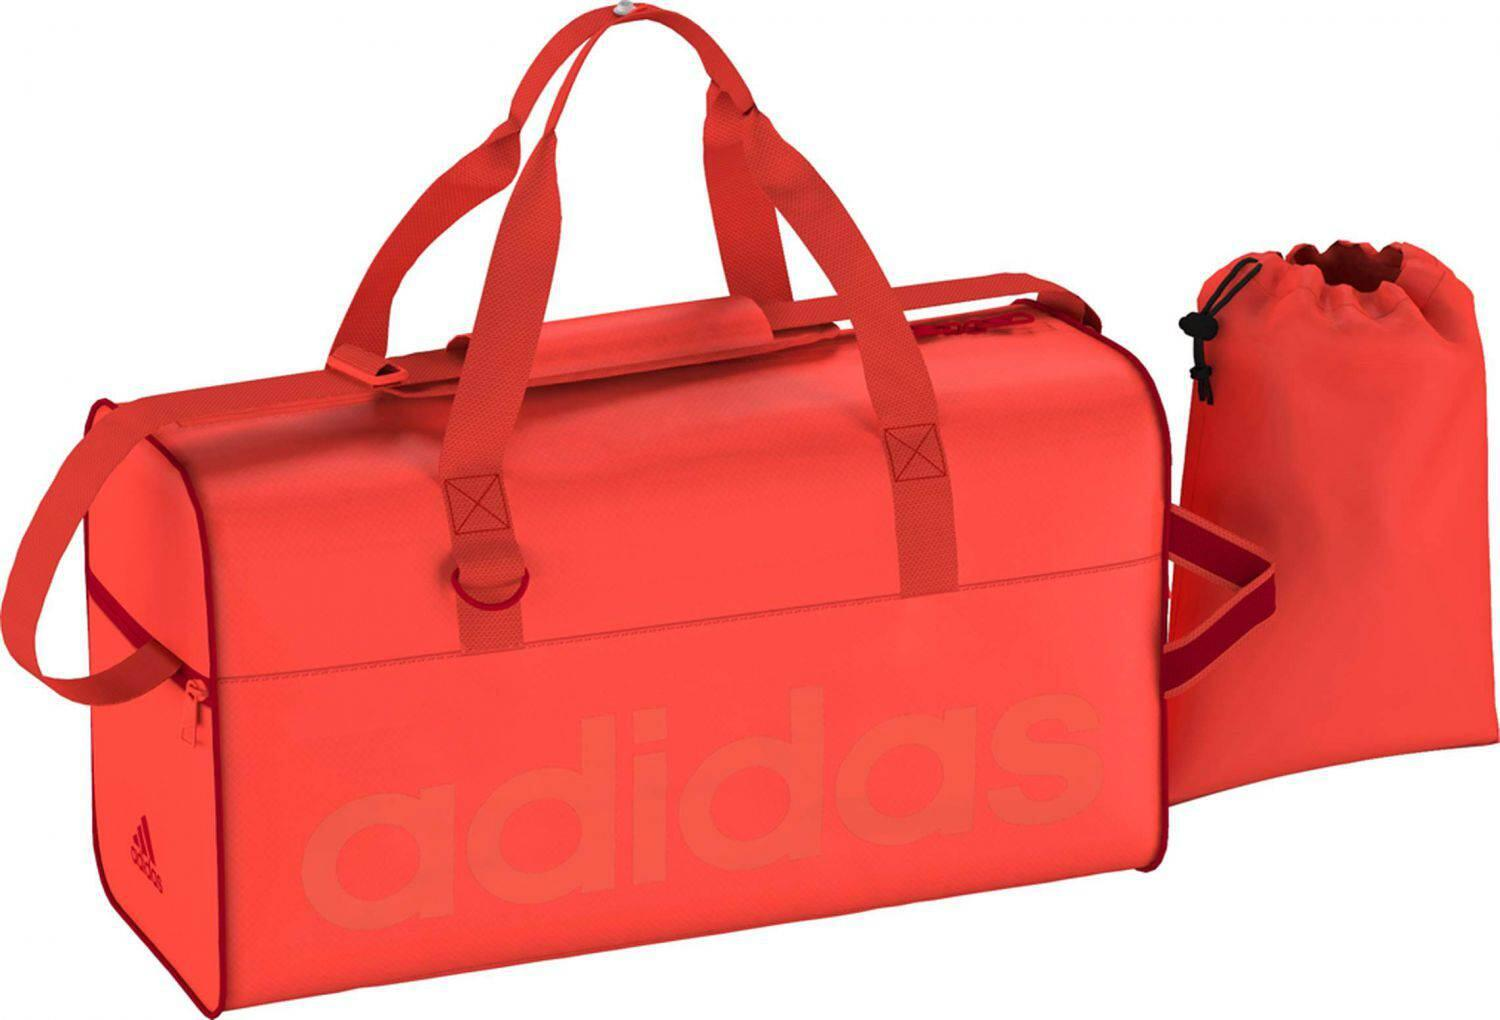 adidas-linear-performance-teambag-s-sporttasche-farbe-solar-red-semi-solar-red-scarlet-